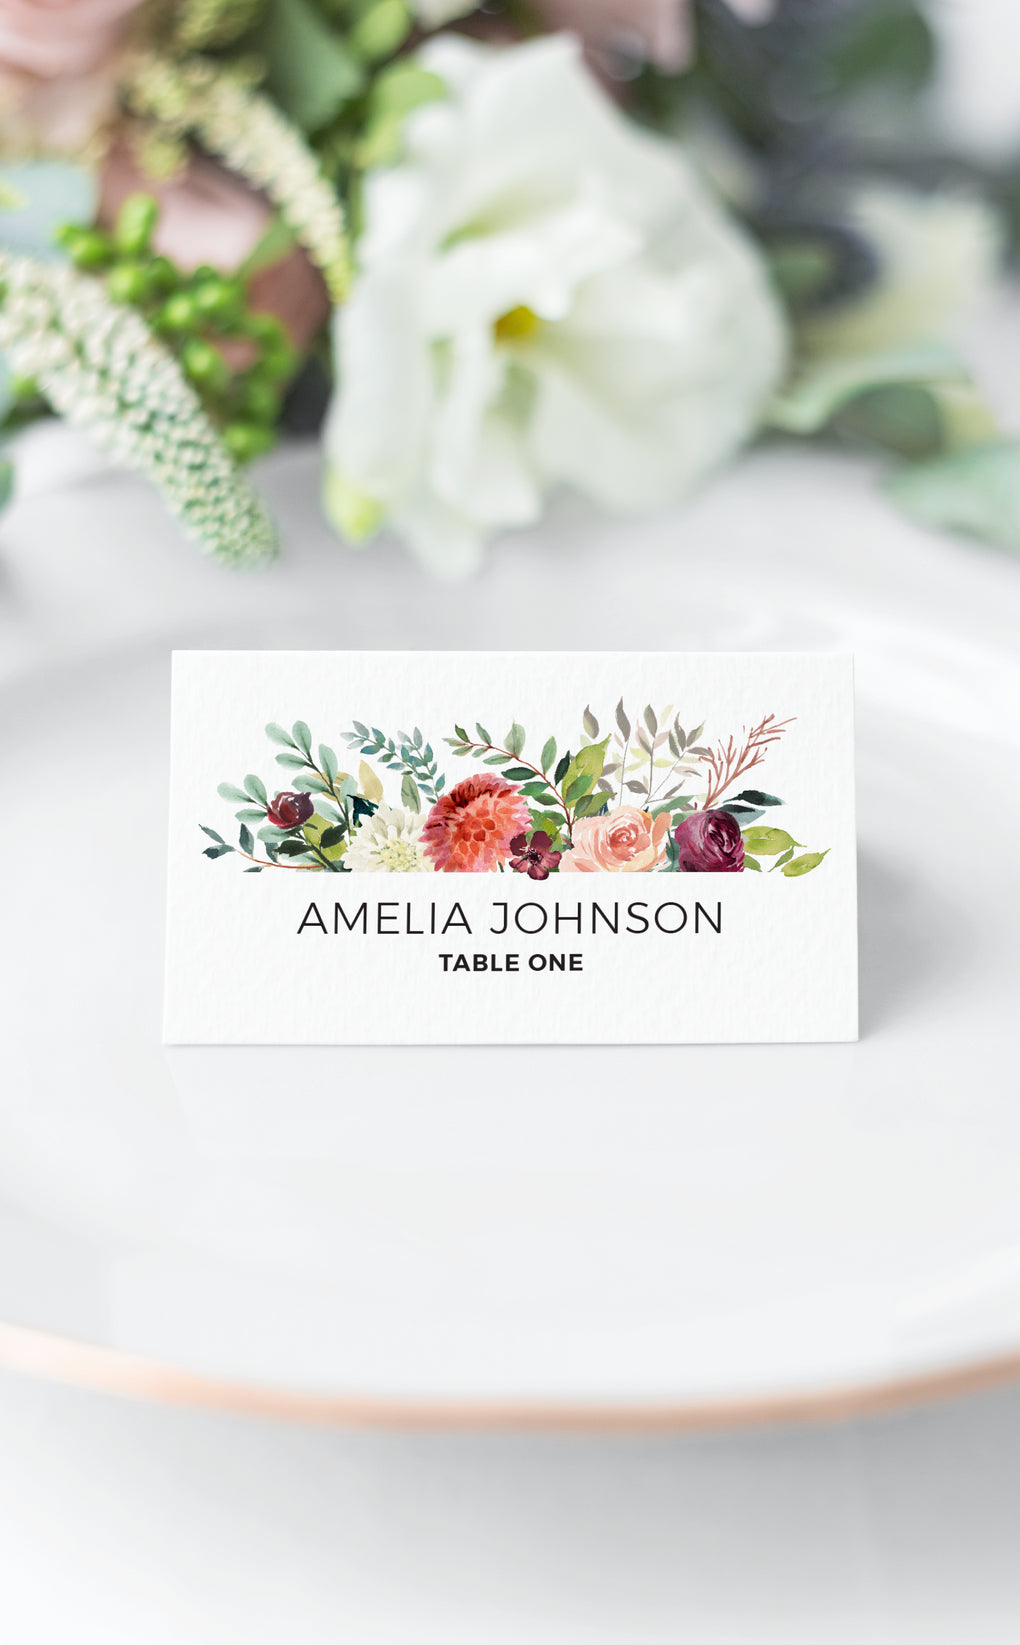 Burgundy floral seating card on white plate at Wedding reception